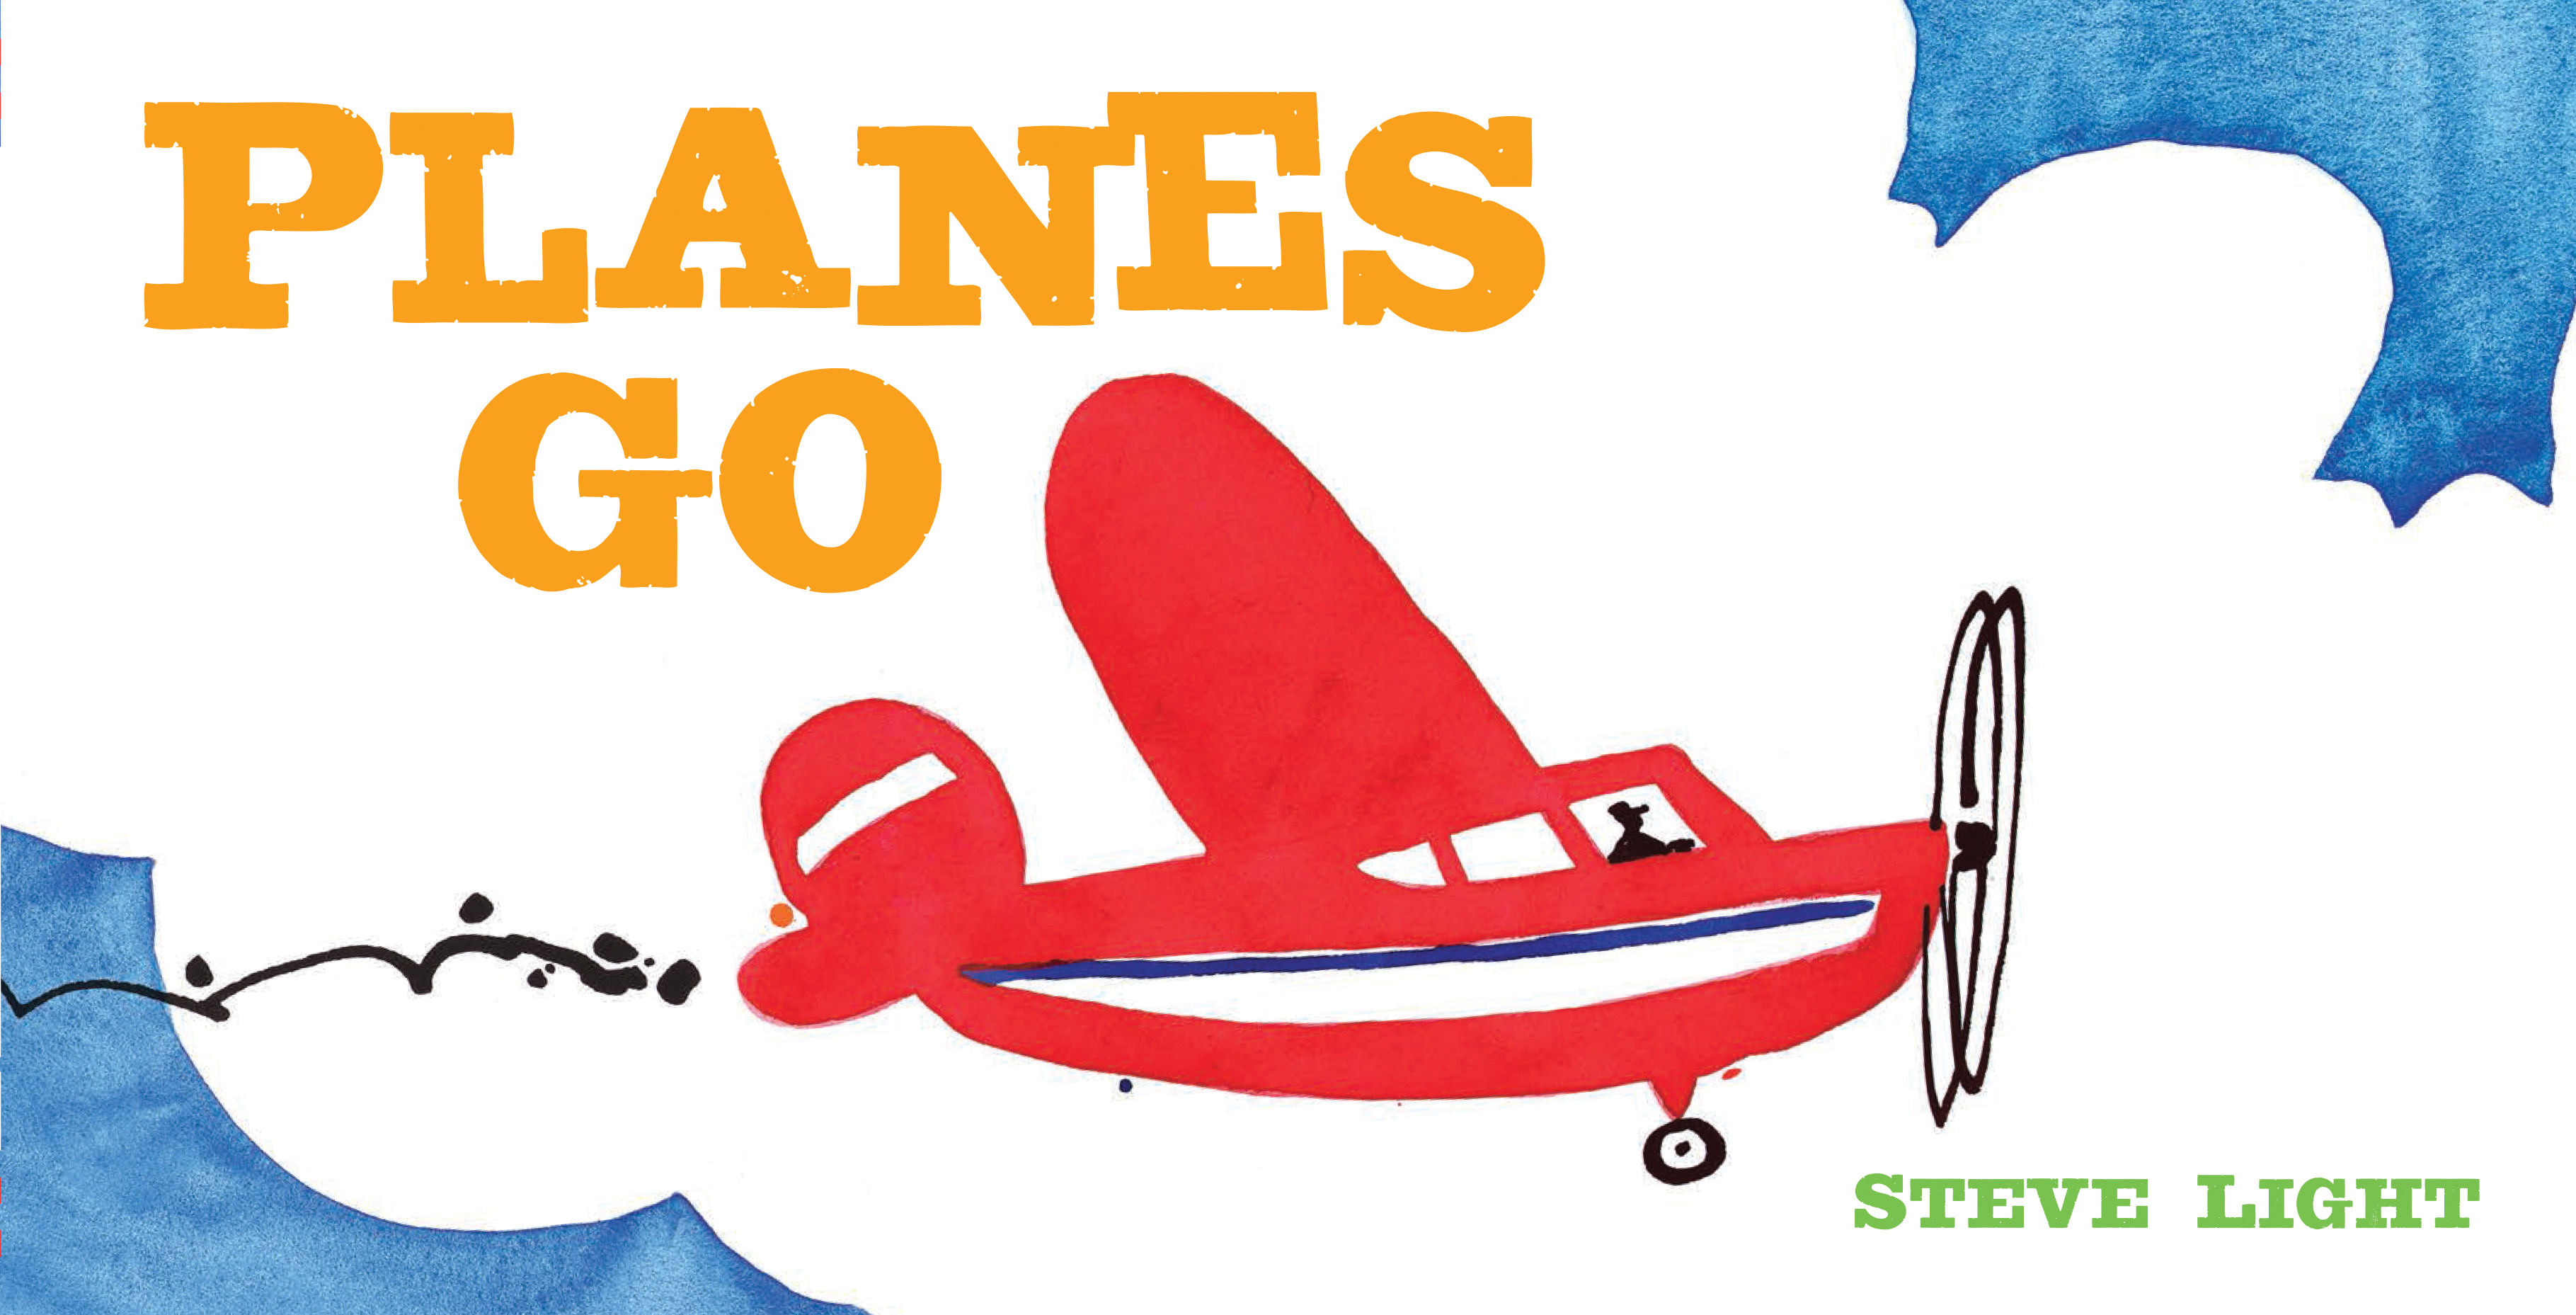 Sunday Story Time: Planes Go by Steve Light